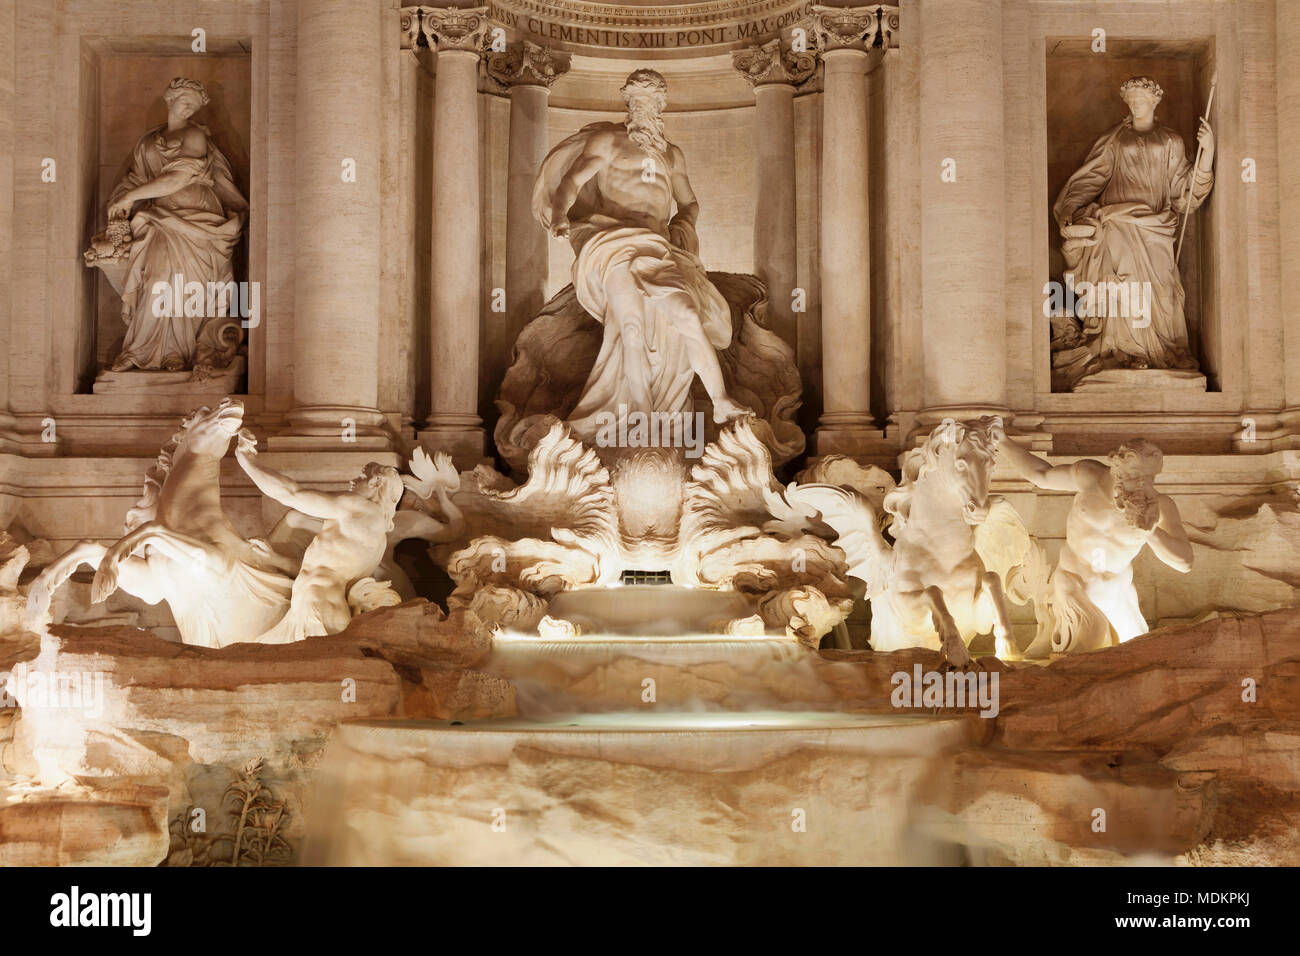 Sea god Oceanus with statues of abundance and healing power, Trevi Fountain, Fontana di Trevi, Rome, Lazio, Italy - Stock Image